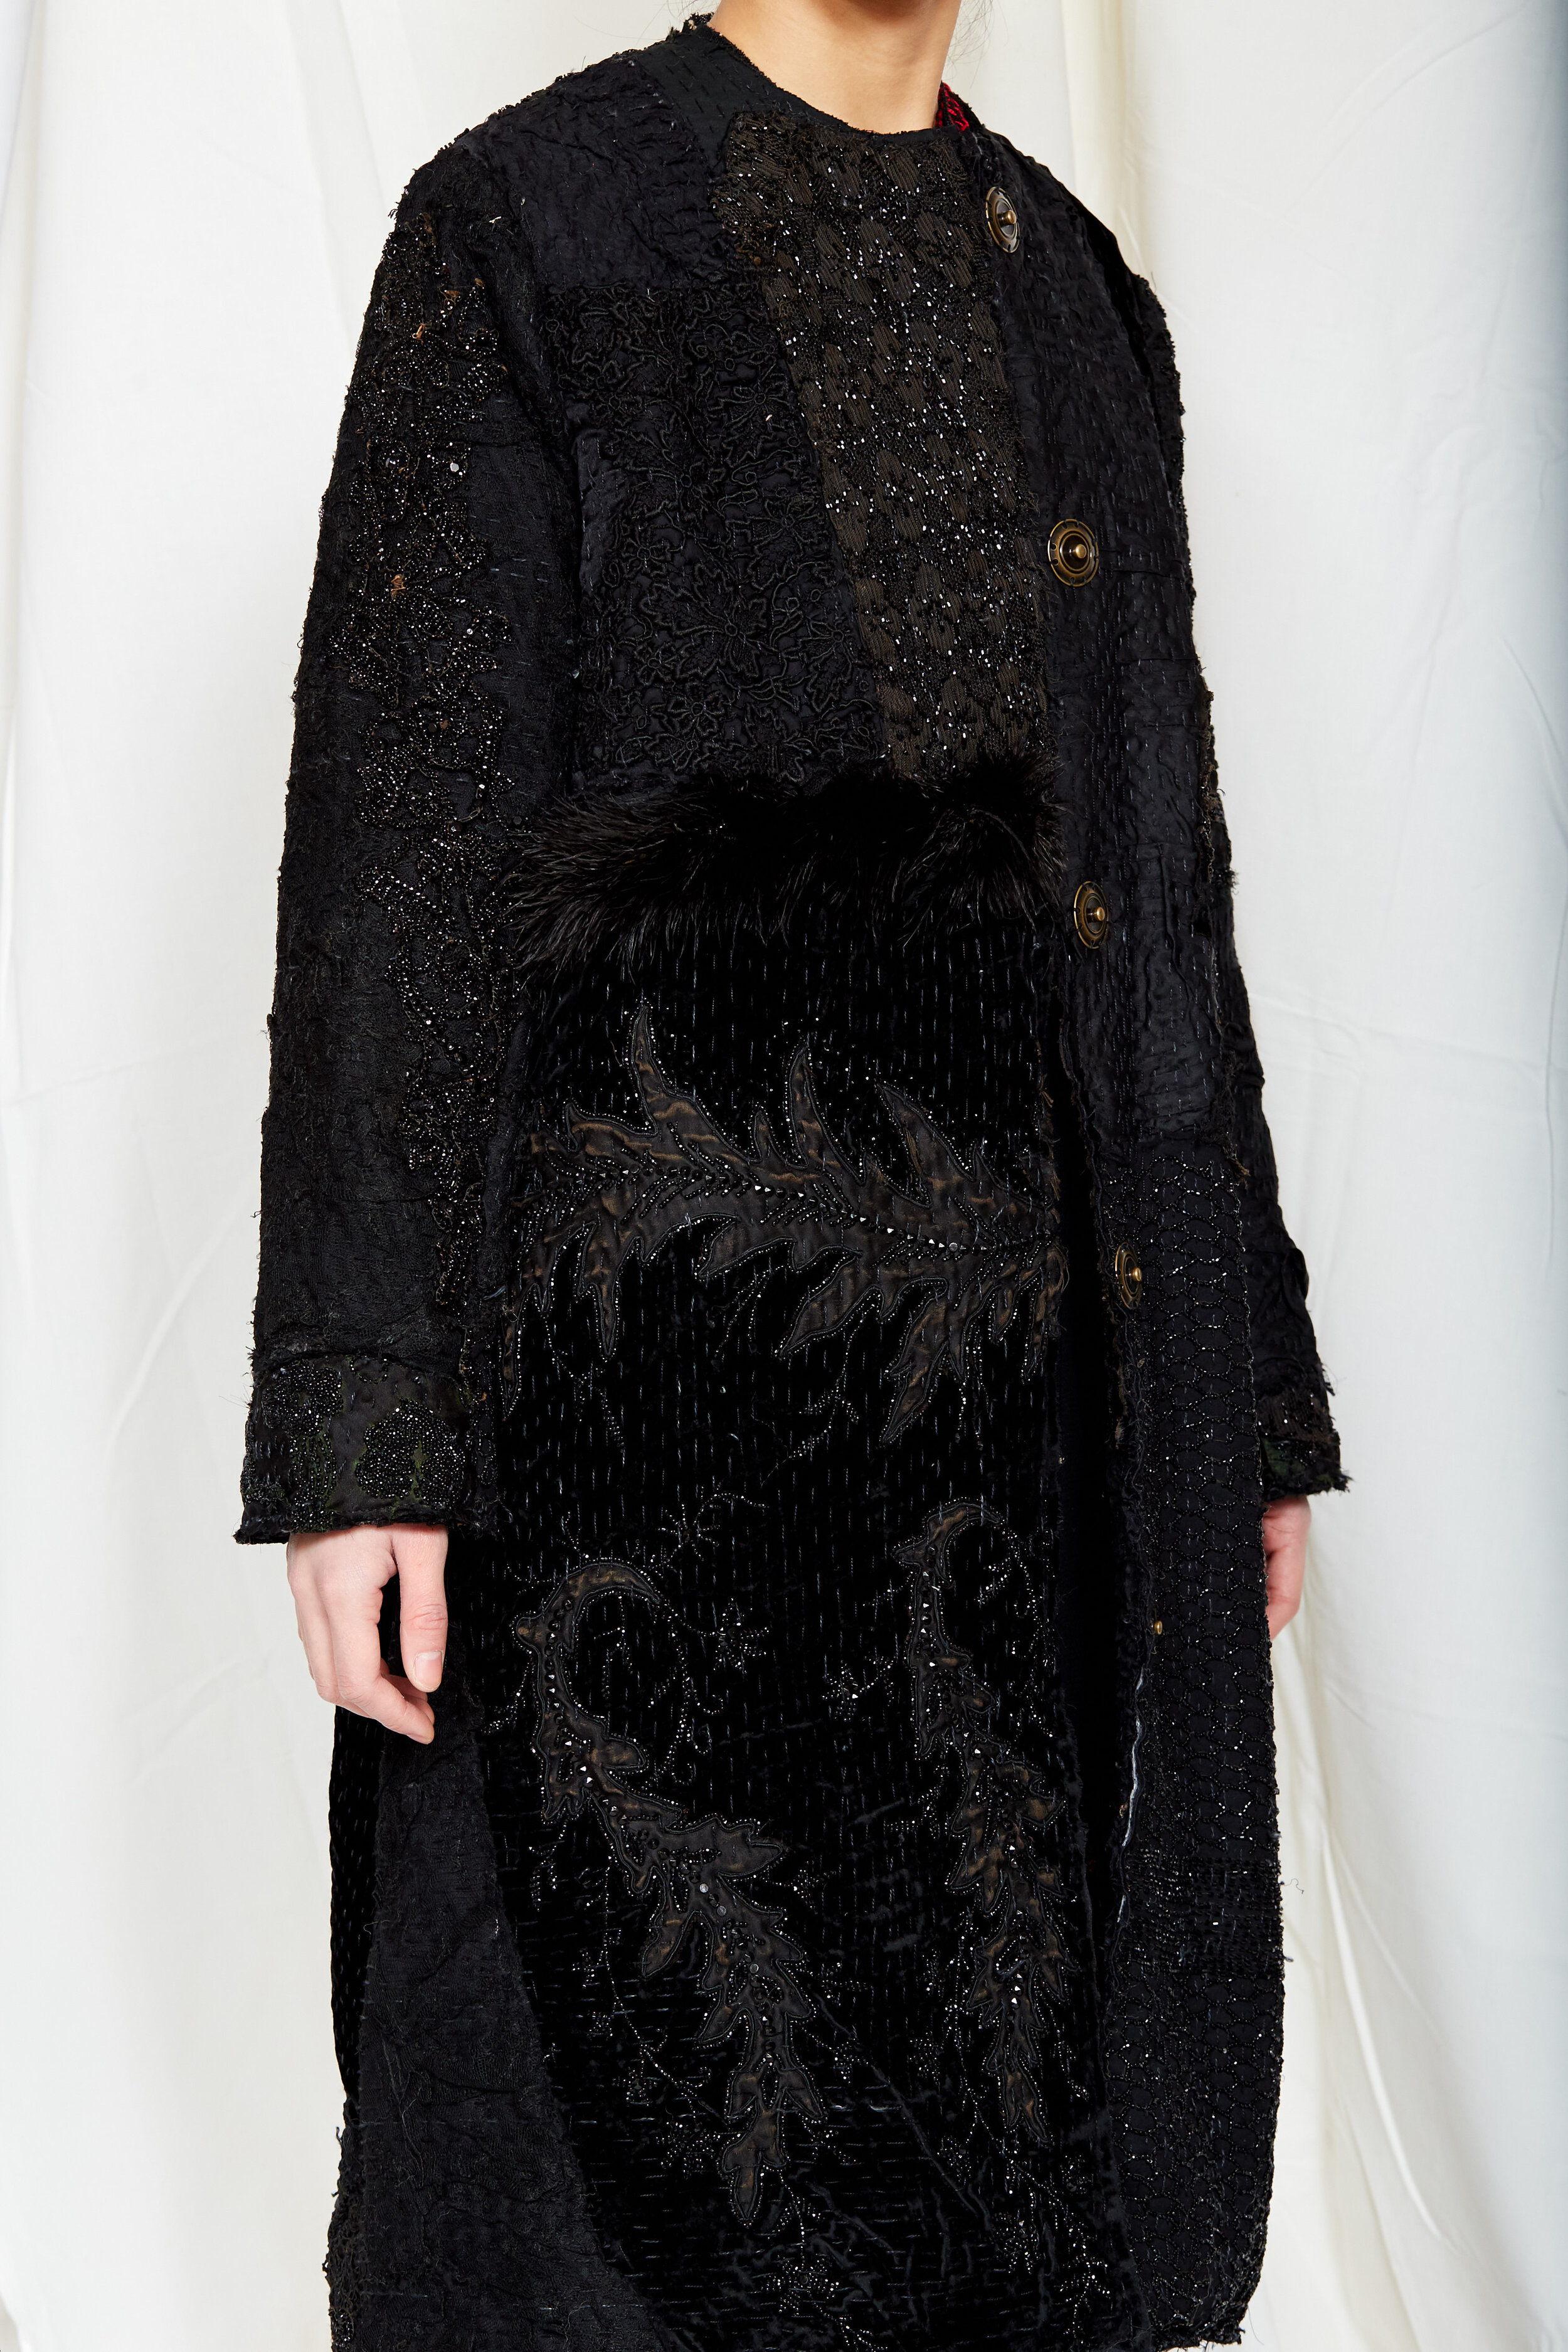 By Walid Womenswear Tanita Embroidered Coat in Black AW20